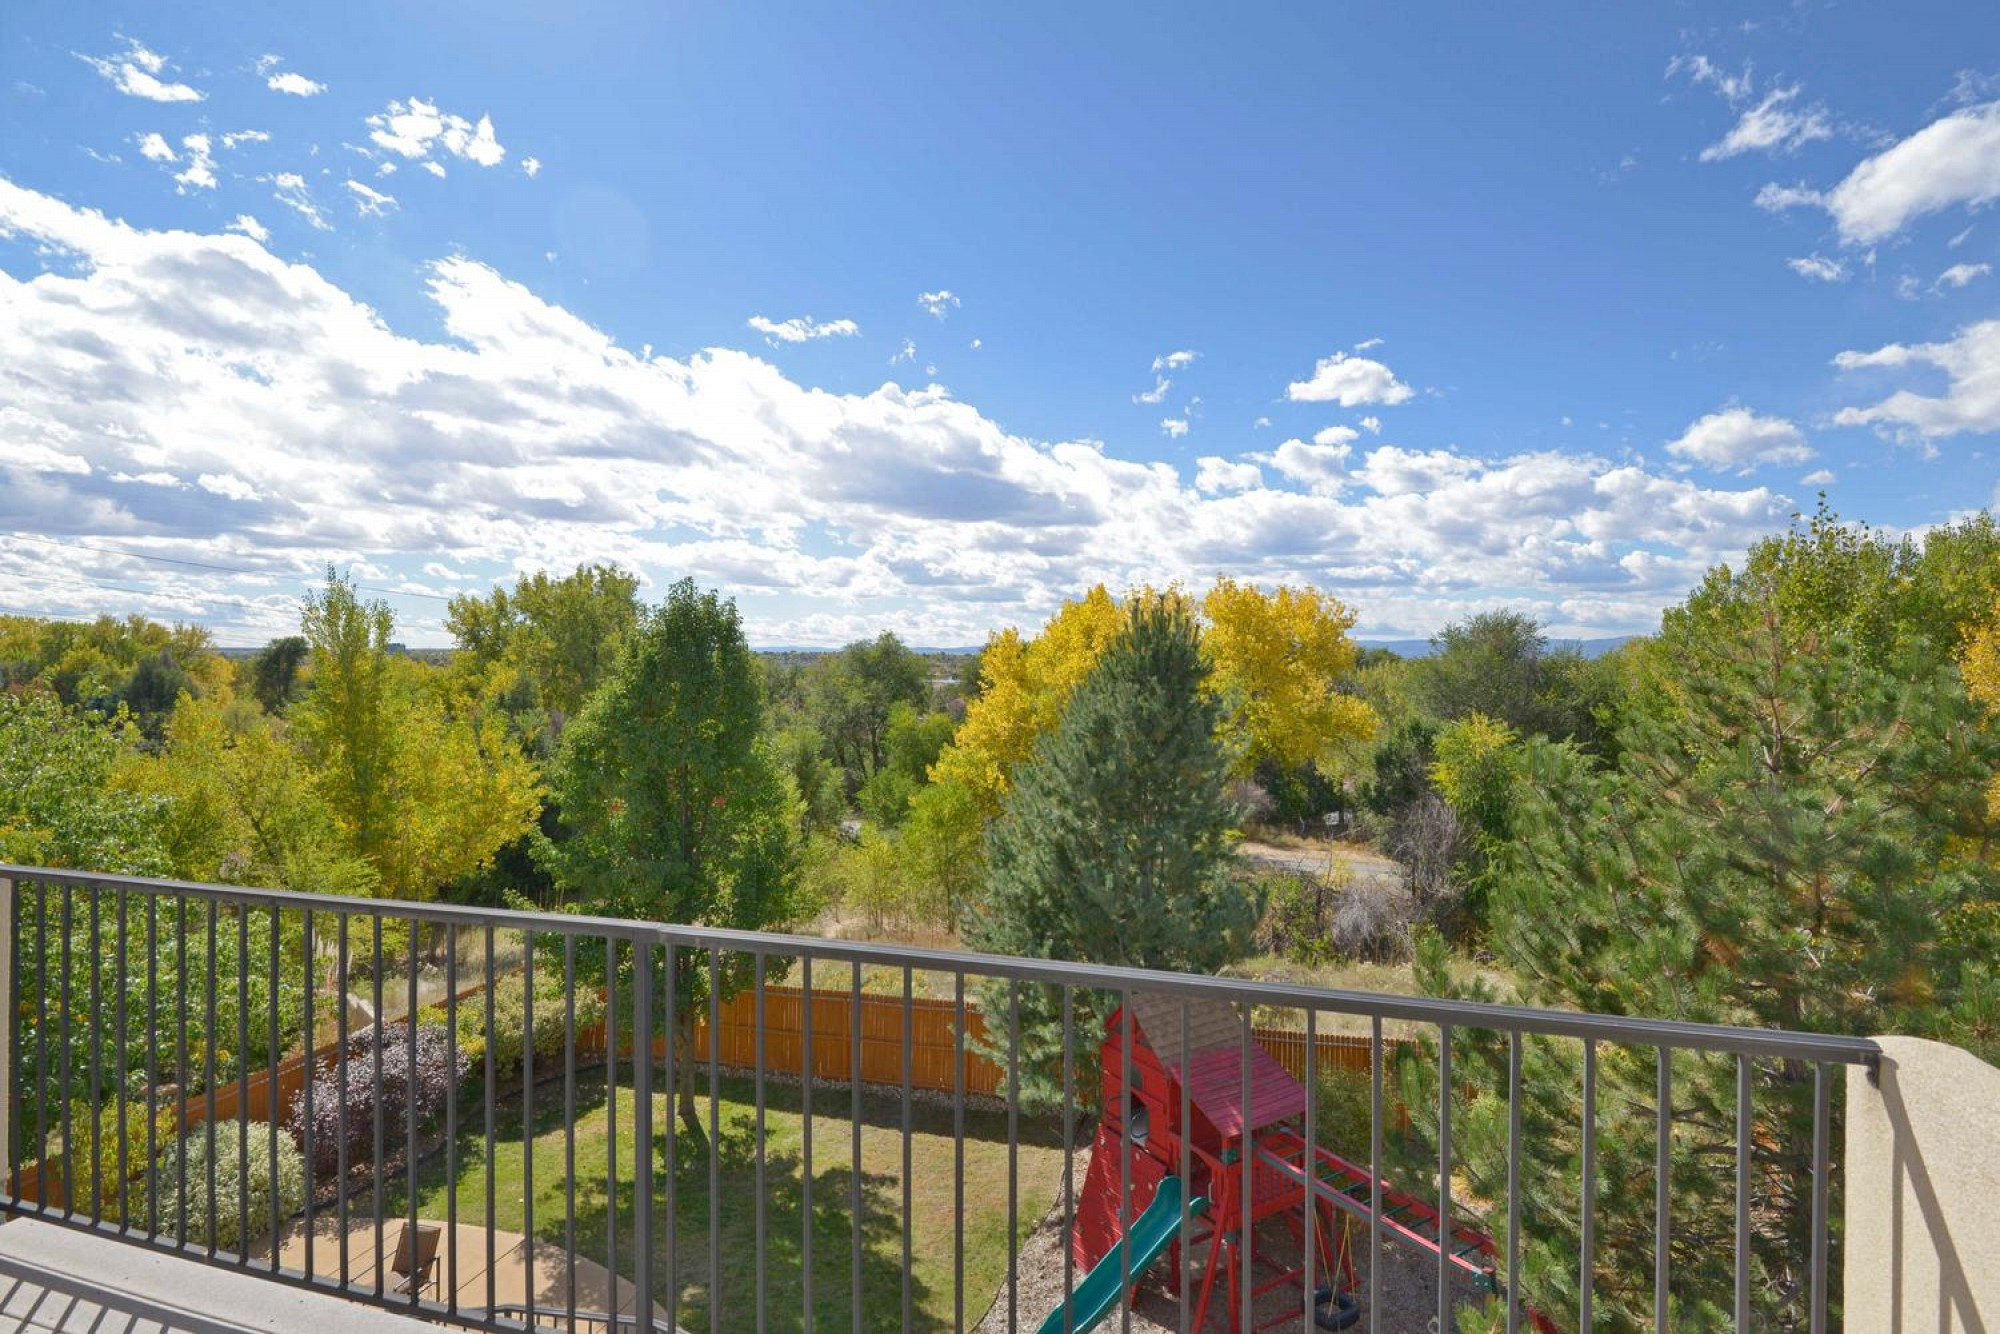 1815 S. Uinta Way, Denver, CO 80231